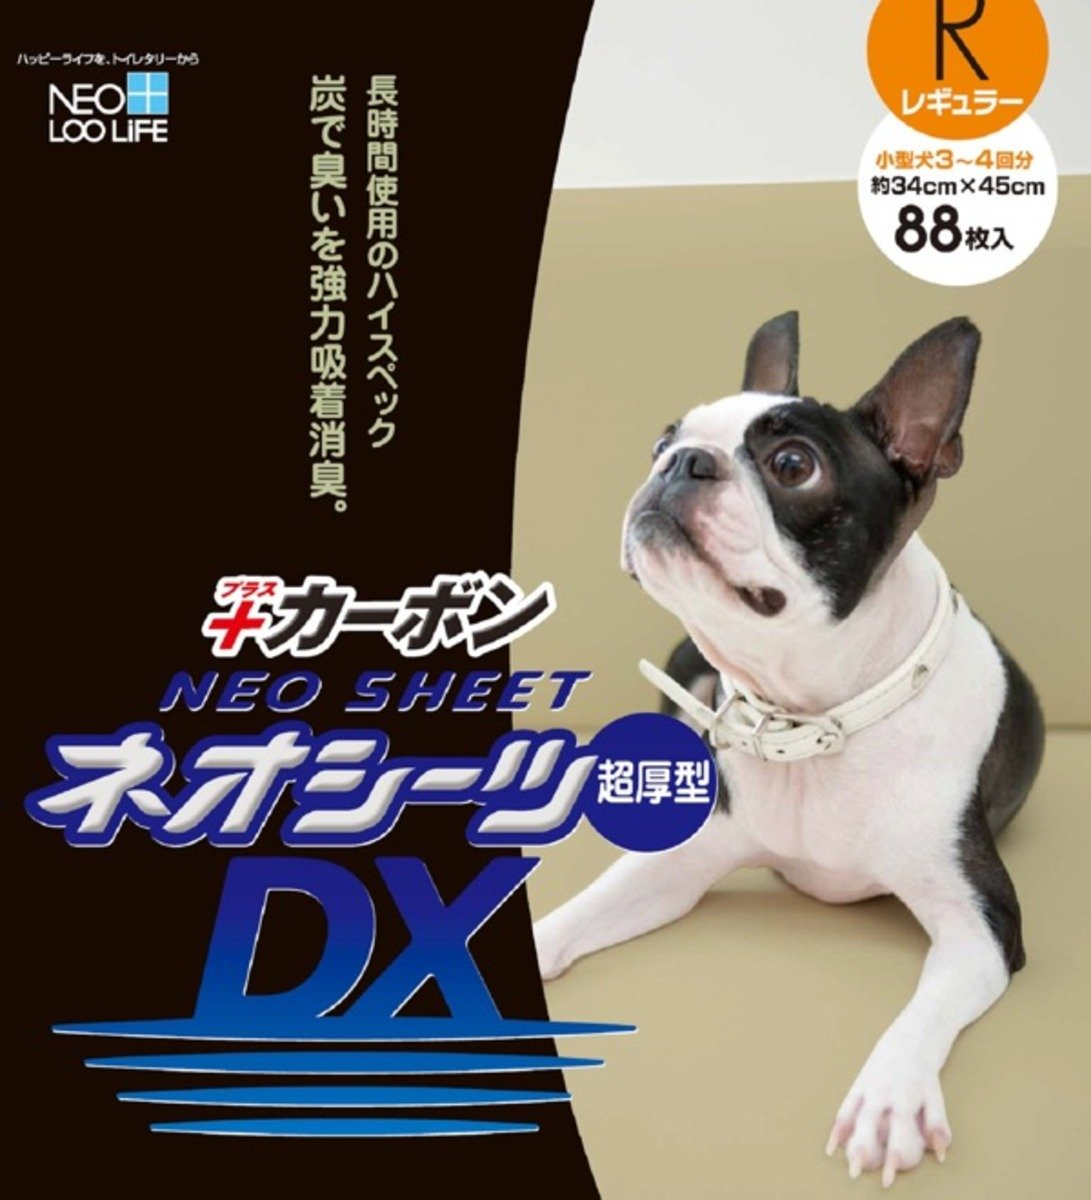 NEO Deodorizing Charcoal Thick Pet Diapers 88pcs - 45x34cm(20764) (Import from Japan)